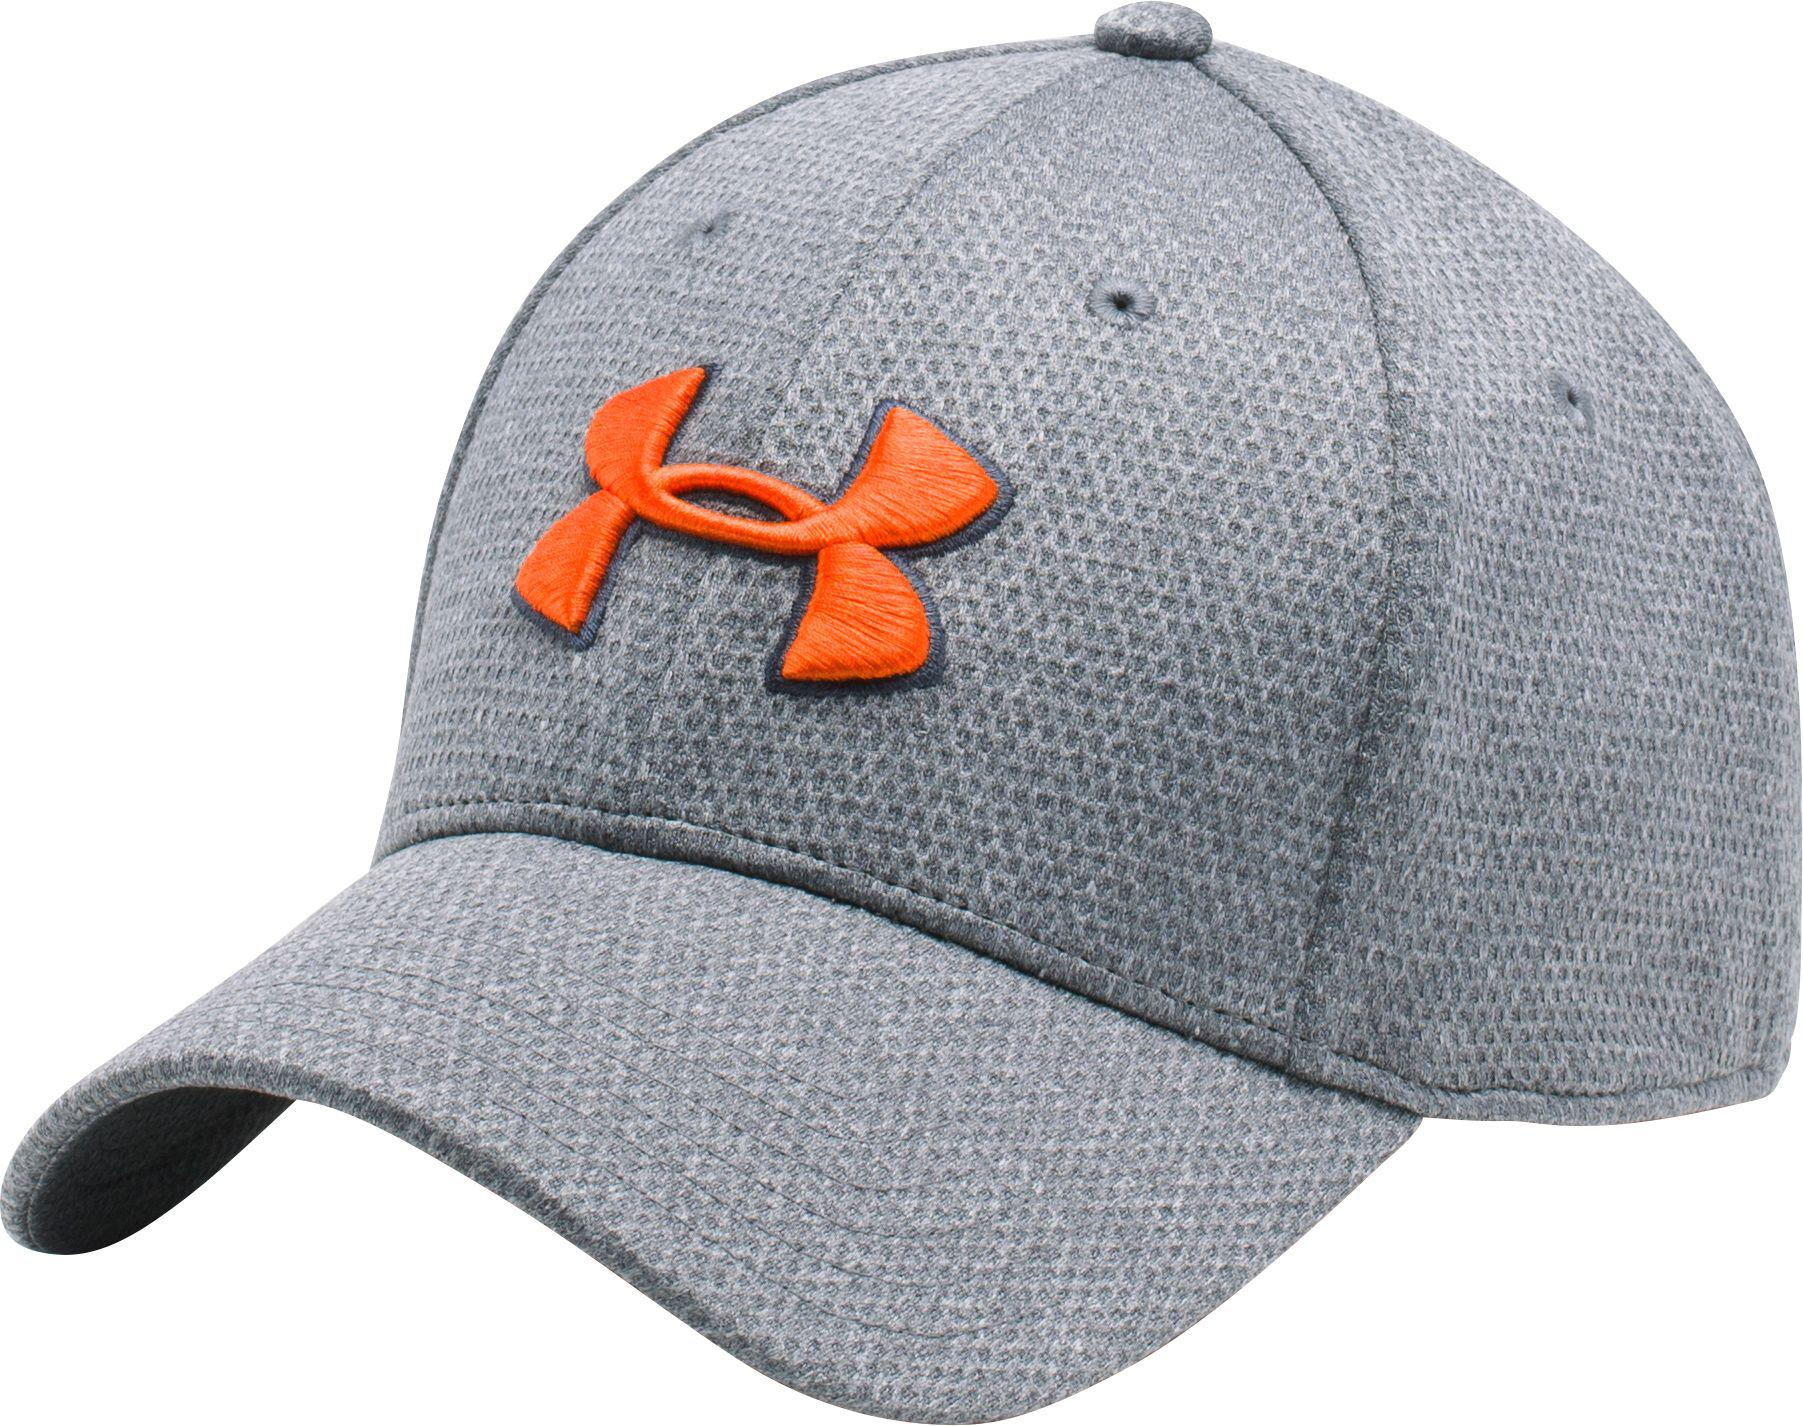 0b7d9a3199c Lyst - Under Armour Heathered Blitzing Running Hat in Gray for Men